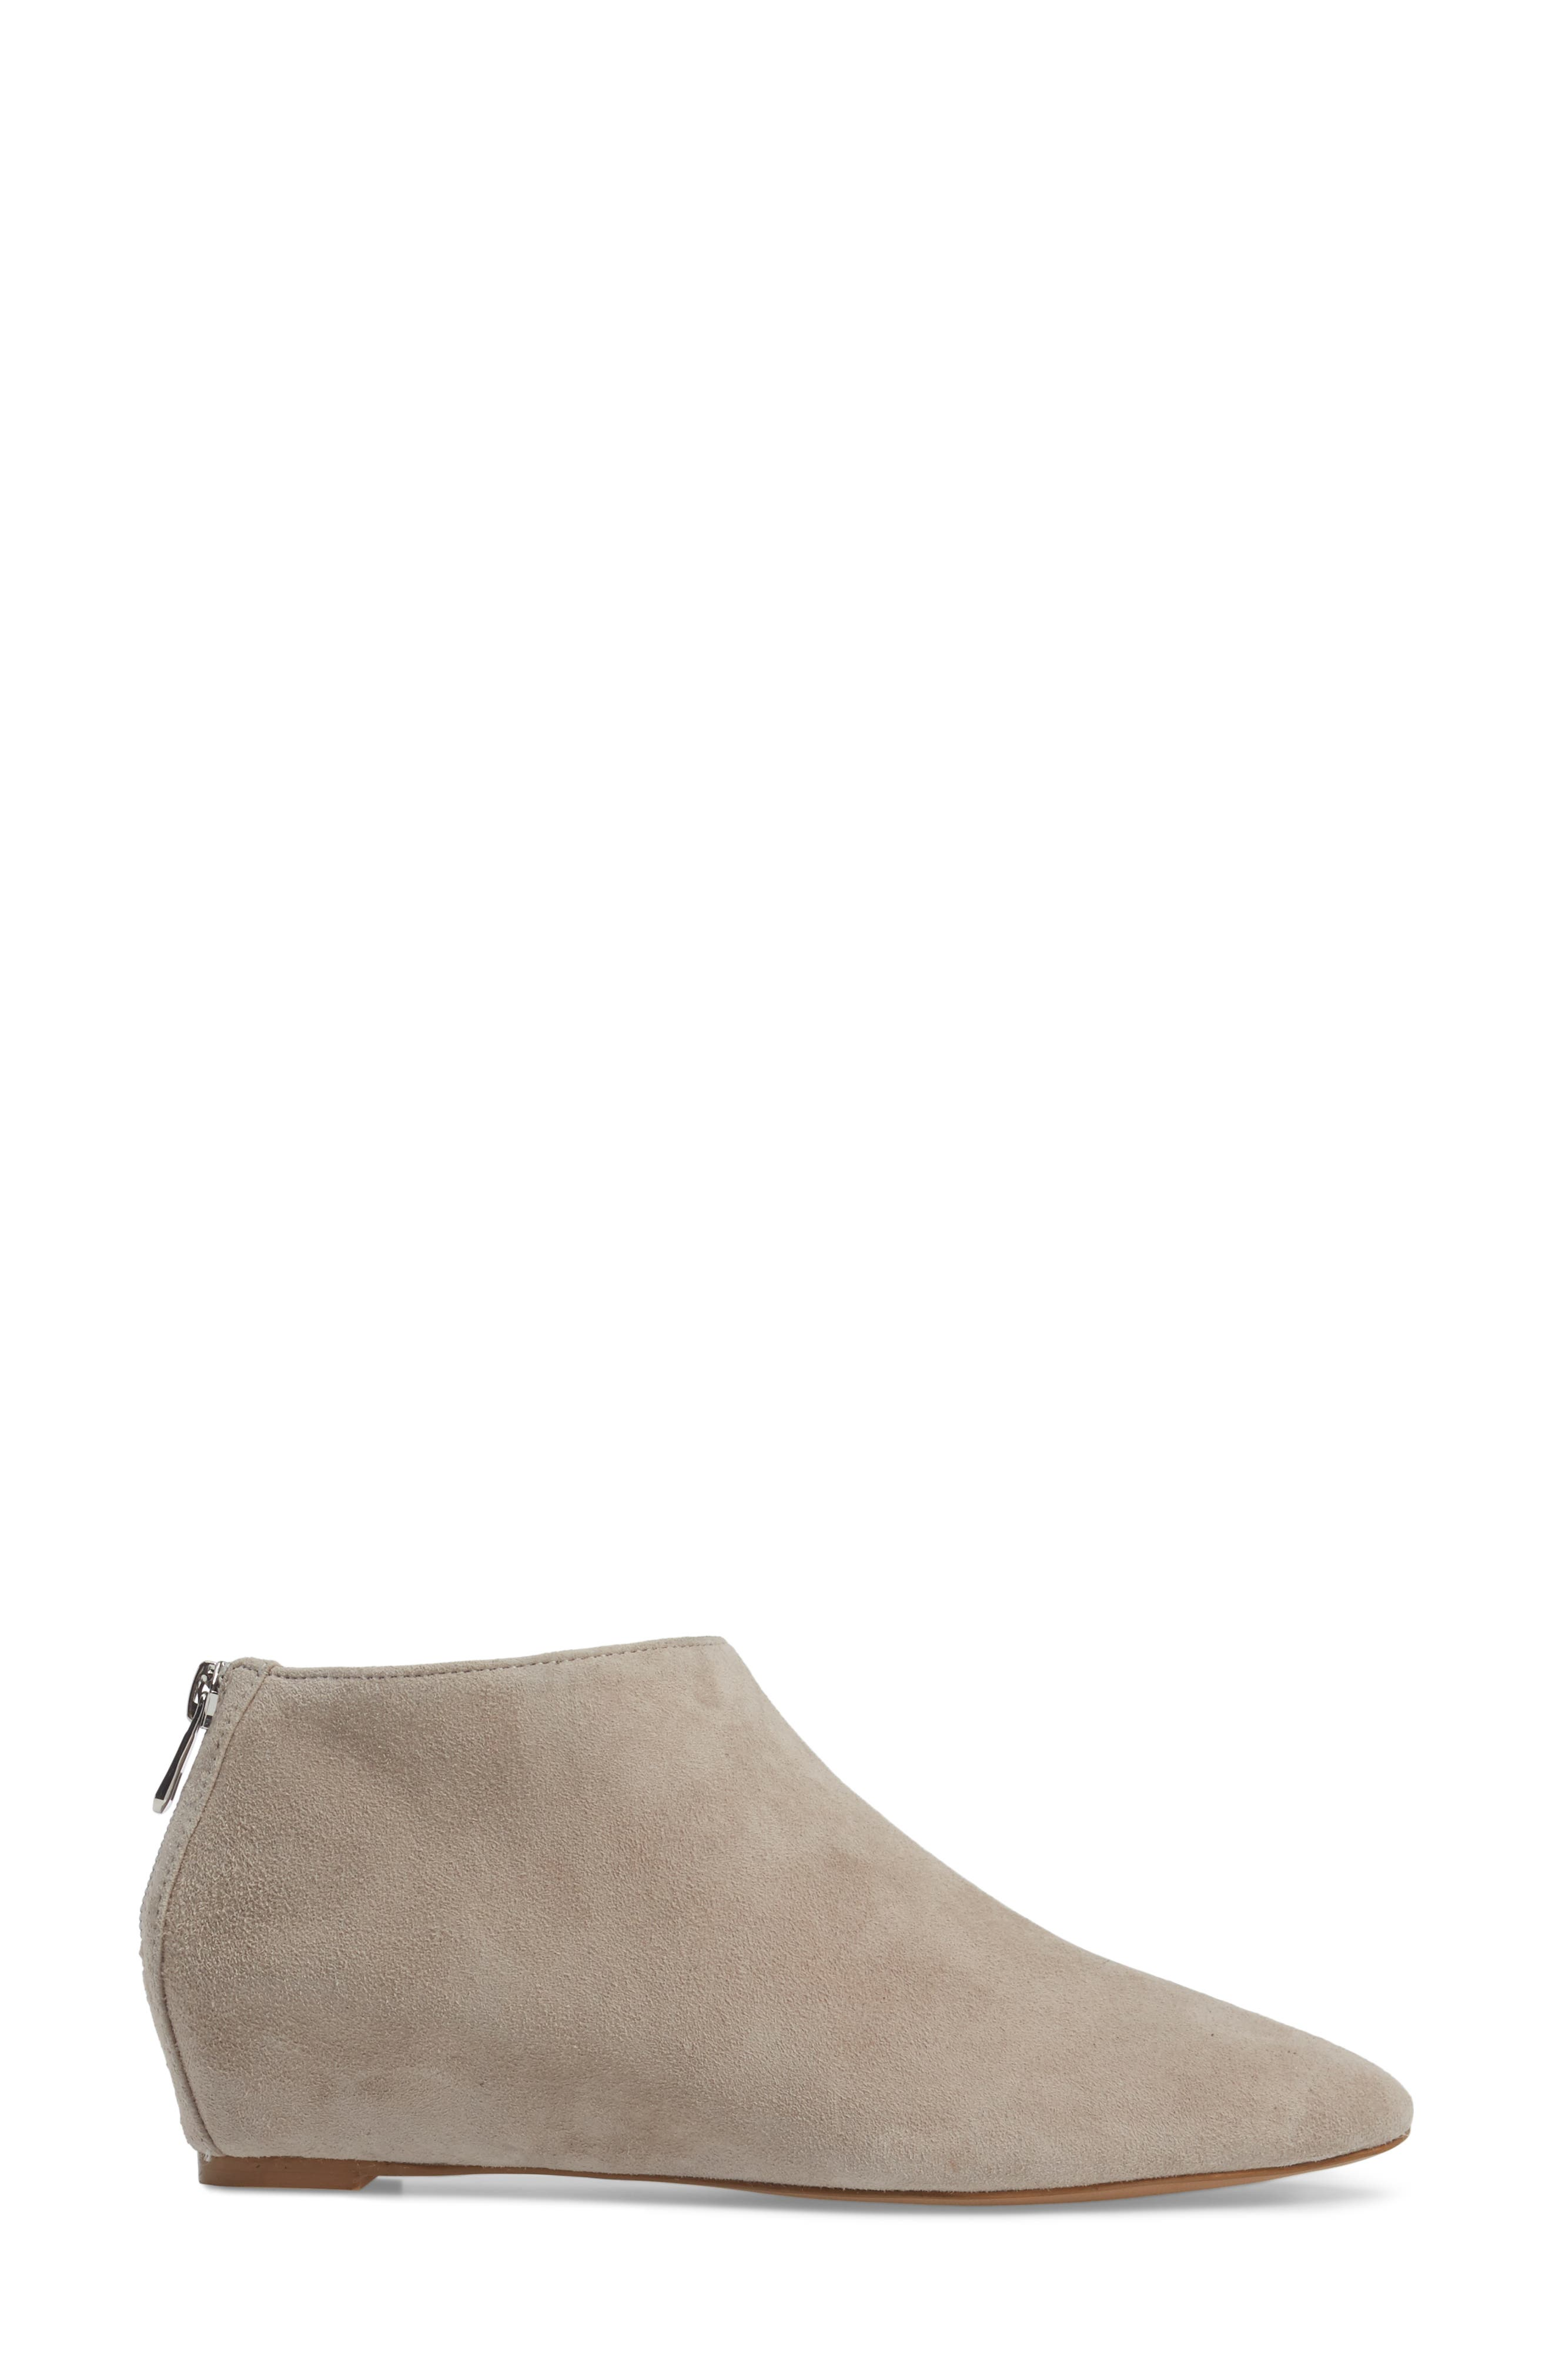 Alternate Image 3  - Aves Les Filles Beatrice Ankle Boot (Women)